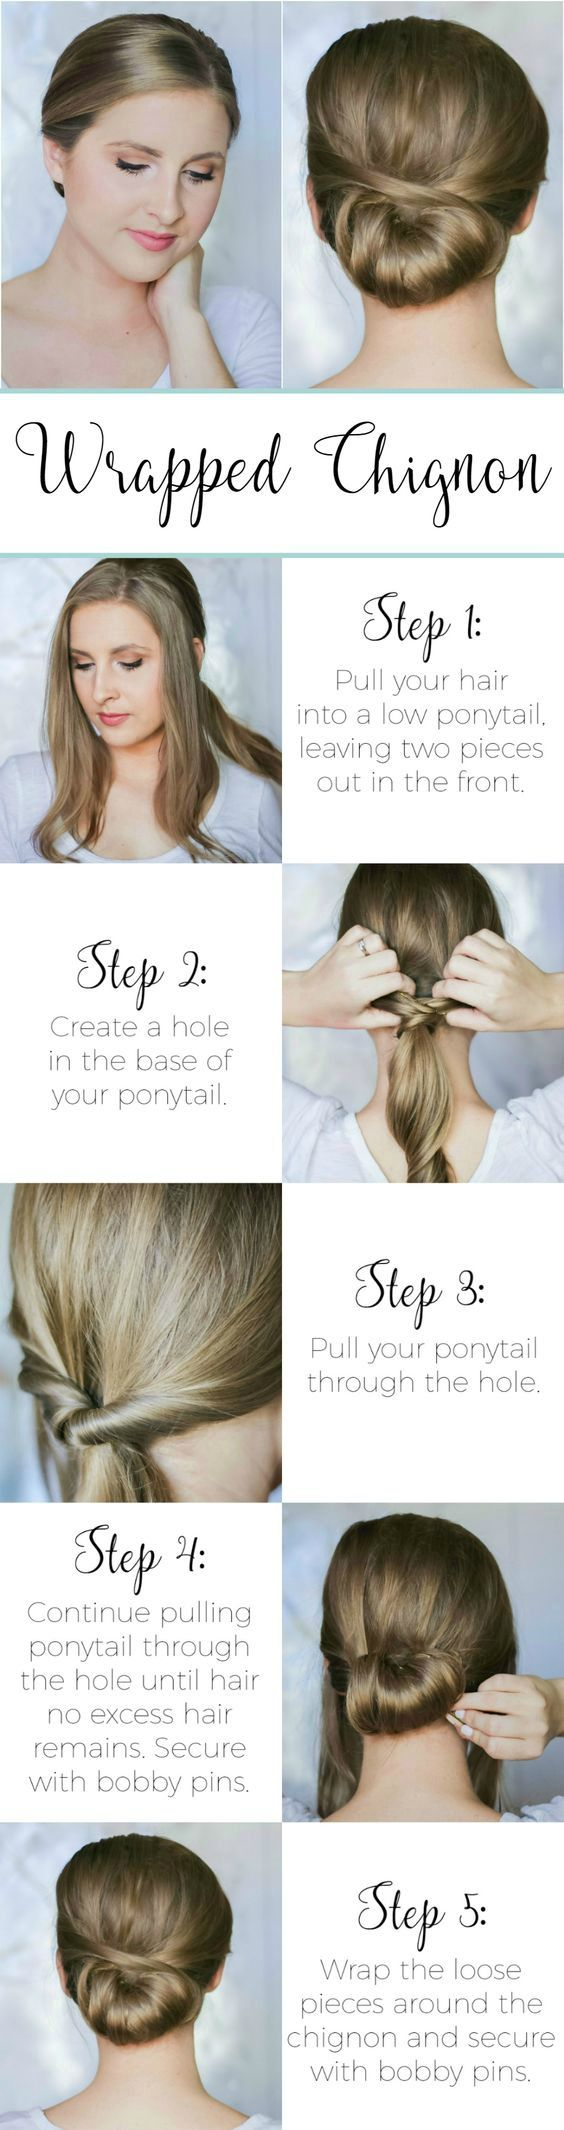 Easy secondday hairstyles chignon hair perfect hairstyle and